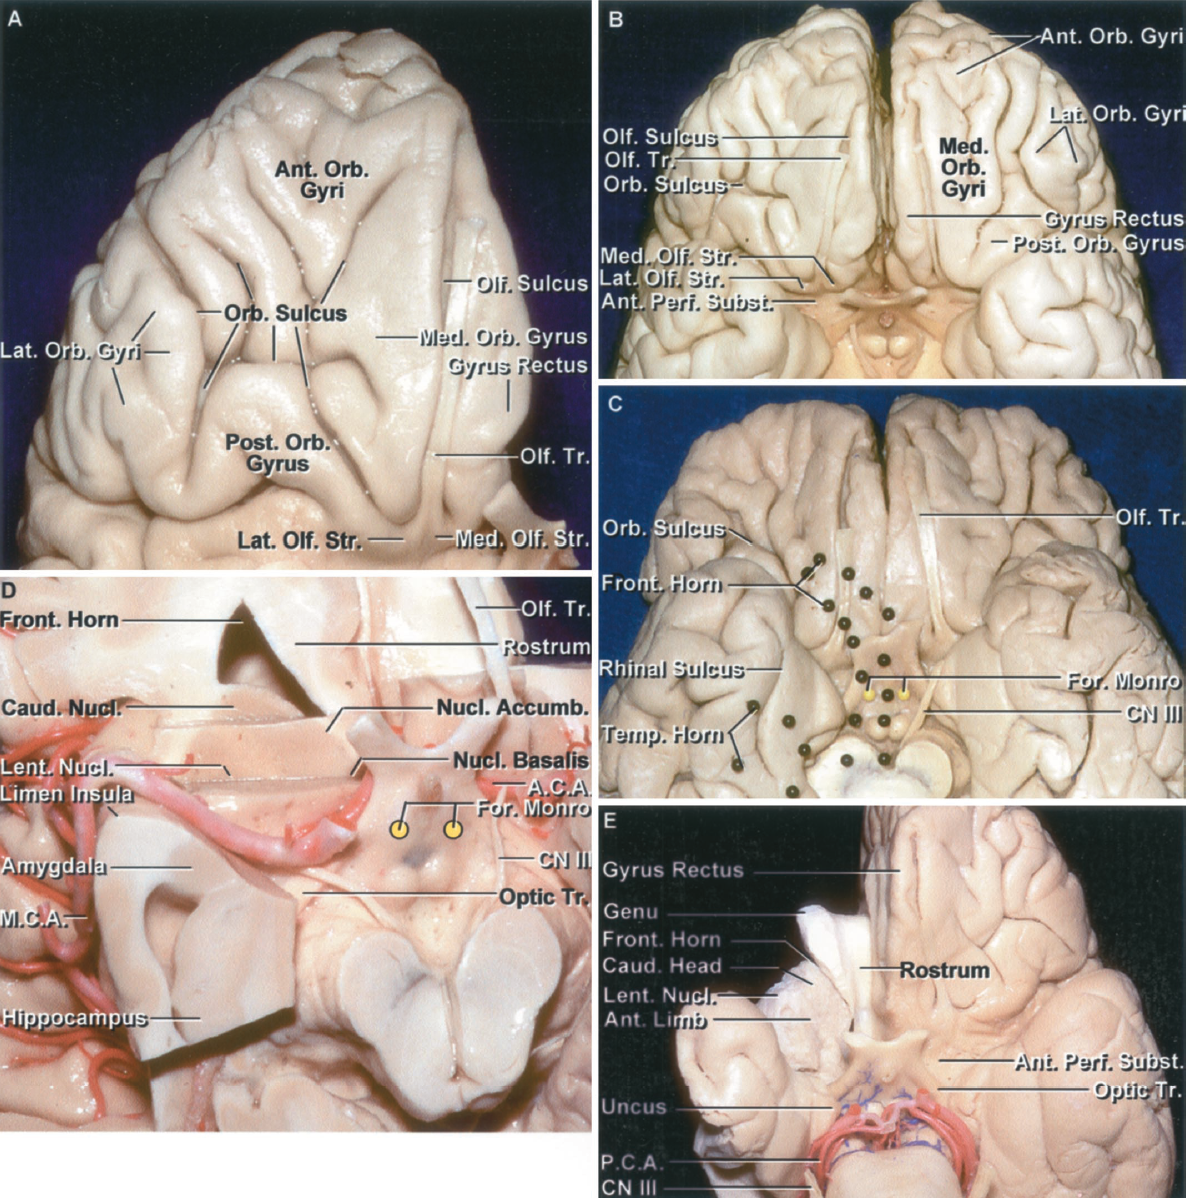 Figure 1.11. Orbital surface of the frontal lobe. A, the olfactory tract extends along the olfactory sulcus on the lateral side of the gyrus rectus and divides at the edge of the anterior perforated substance into the medial and lateral olfactory striae. The orbital surface lateral to the gyrus rectus is divided by an H-shaped sulcus into anterior, posterior, medial, and lateral orbital gyri. B, another cerebrum. The olfactory sulci separate the gyrus rectus medially from the orbital gyri laterally. The orbital surface lateral to the gyrus rectus is divided by a number of sulci that tend to form an H-shaped configuration and divide the area into anterior, posterior, medial, and lateral orbital gyri. The most lateral of the lateral orbital gyri is continuous with the pars orbitalis of the inferior frontal gyrus. C, orbital surfaces of another hemisphere. The location of the frontal and temporal horns deep within the hemisphere has been outlined using colored black pins. The frontal horn extends forward in the frontal lobe to approximately the level of the transverse part of the H-shaped orbital sulcus. The deep site of the foramen of Monro, shown with yellow pins, in relationship to the basal surface is anterior to the mamillary bodies. D, the lower part of the right frontal lobe has been removed to expose the frontal horn. The caudate nucleus forms the lateral wall of the frontal horn and the rostrum of the corpus callosum forms the floor. At a more superior axial level, the caudate and lentiform nuclei are separated by the anterior limb of the internal capsule, but at this level below the anterior limb of the internal capsule, the nuclei form a solid, unbroken mass of gray matter located above the anterior perforated substance and adjoining part of the orbital surface. In addition, the lentiform and caudate nuclei blend medially without a clear border into the nucleus basalis and nucleus accumbens. The nucleus basalis is located in the medial part of this gray mass below the anterior commissure, and the nucleus accumbens is situated in front of the nucleus basalis. The amygdala is located below and blends into the lentiform nucleus at its upper border. E, fiber dissection of the right hemisphere showing the relationship of the genu and rostrum of the corpus callosum to the orbital surface. The anterior margin of the genu of the corpus callosum is located above the midportion of the basal surface. The rostrum of the corpus callosum forms the floor of the frontal horn. The genu, along with its large fiber bundle, the forceps minor, forms the anterior wall of the frontal horn. The caudate nucleus forms the lateral wall of the frontal horn. The basal side of the caudate nucleus and the lentiform nucleus, formed by the putamen and globus pallidus, blend together in the area below the anterior limb of the frontal capsule to form a globular mass of gray matter that extends almost unbroken from the lower part of the frontal horn to the insula. At a more superior level, the anterior limb of the internal capsule cuts into the interval between the caudate and lentiform nuclei dividing them into separate nuclei. A.C.A., anterior cerebral artery; Accumb., accumbens; Ant., anterior; Caud., caudate; CN, cranial nerve; For., foramen; Front., frontal; Lat., lateral; Lent., lentiform; M.C.A., medial cerebral artery; Med., medial; Nucl., nucleus; Olf., olfactory; Orb., orbital; P.C.A., posterior cerebral artery; Perf., perforated; Post., posterior; Str., striae; Subst., substance; Temp., temporal; Tr., tract.